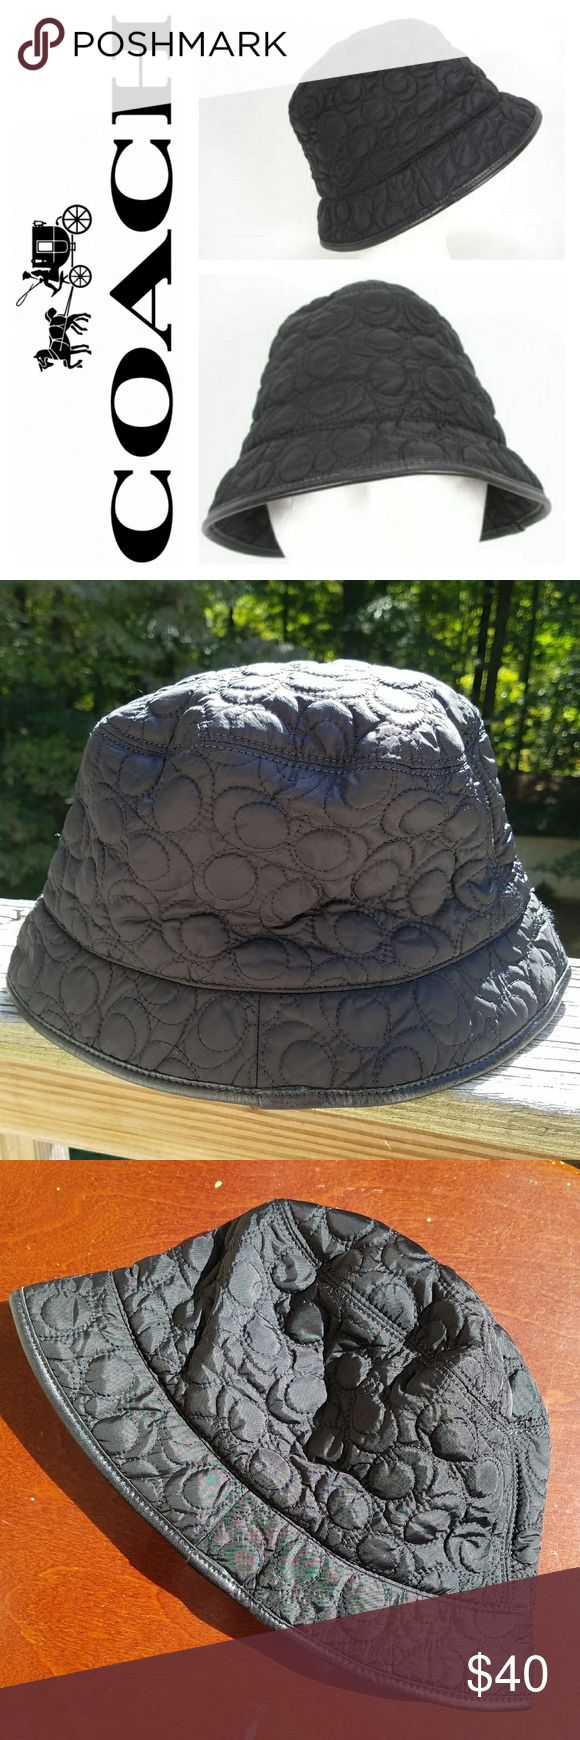 """Coach Quilted Black Signature C Bucket Rain Hat A jaunty little authentic hat from Coach.  Hat is quilted and has leather trim and is lined.  Very good condition.  There is a small mark on the leather trim.  Size is marked as Petite Small.   Measurements - are approximate  Inside Circumference = 21"""" Coach Accessories Hats"""